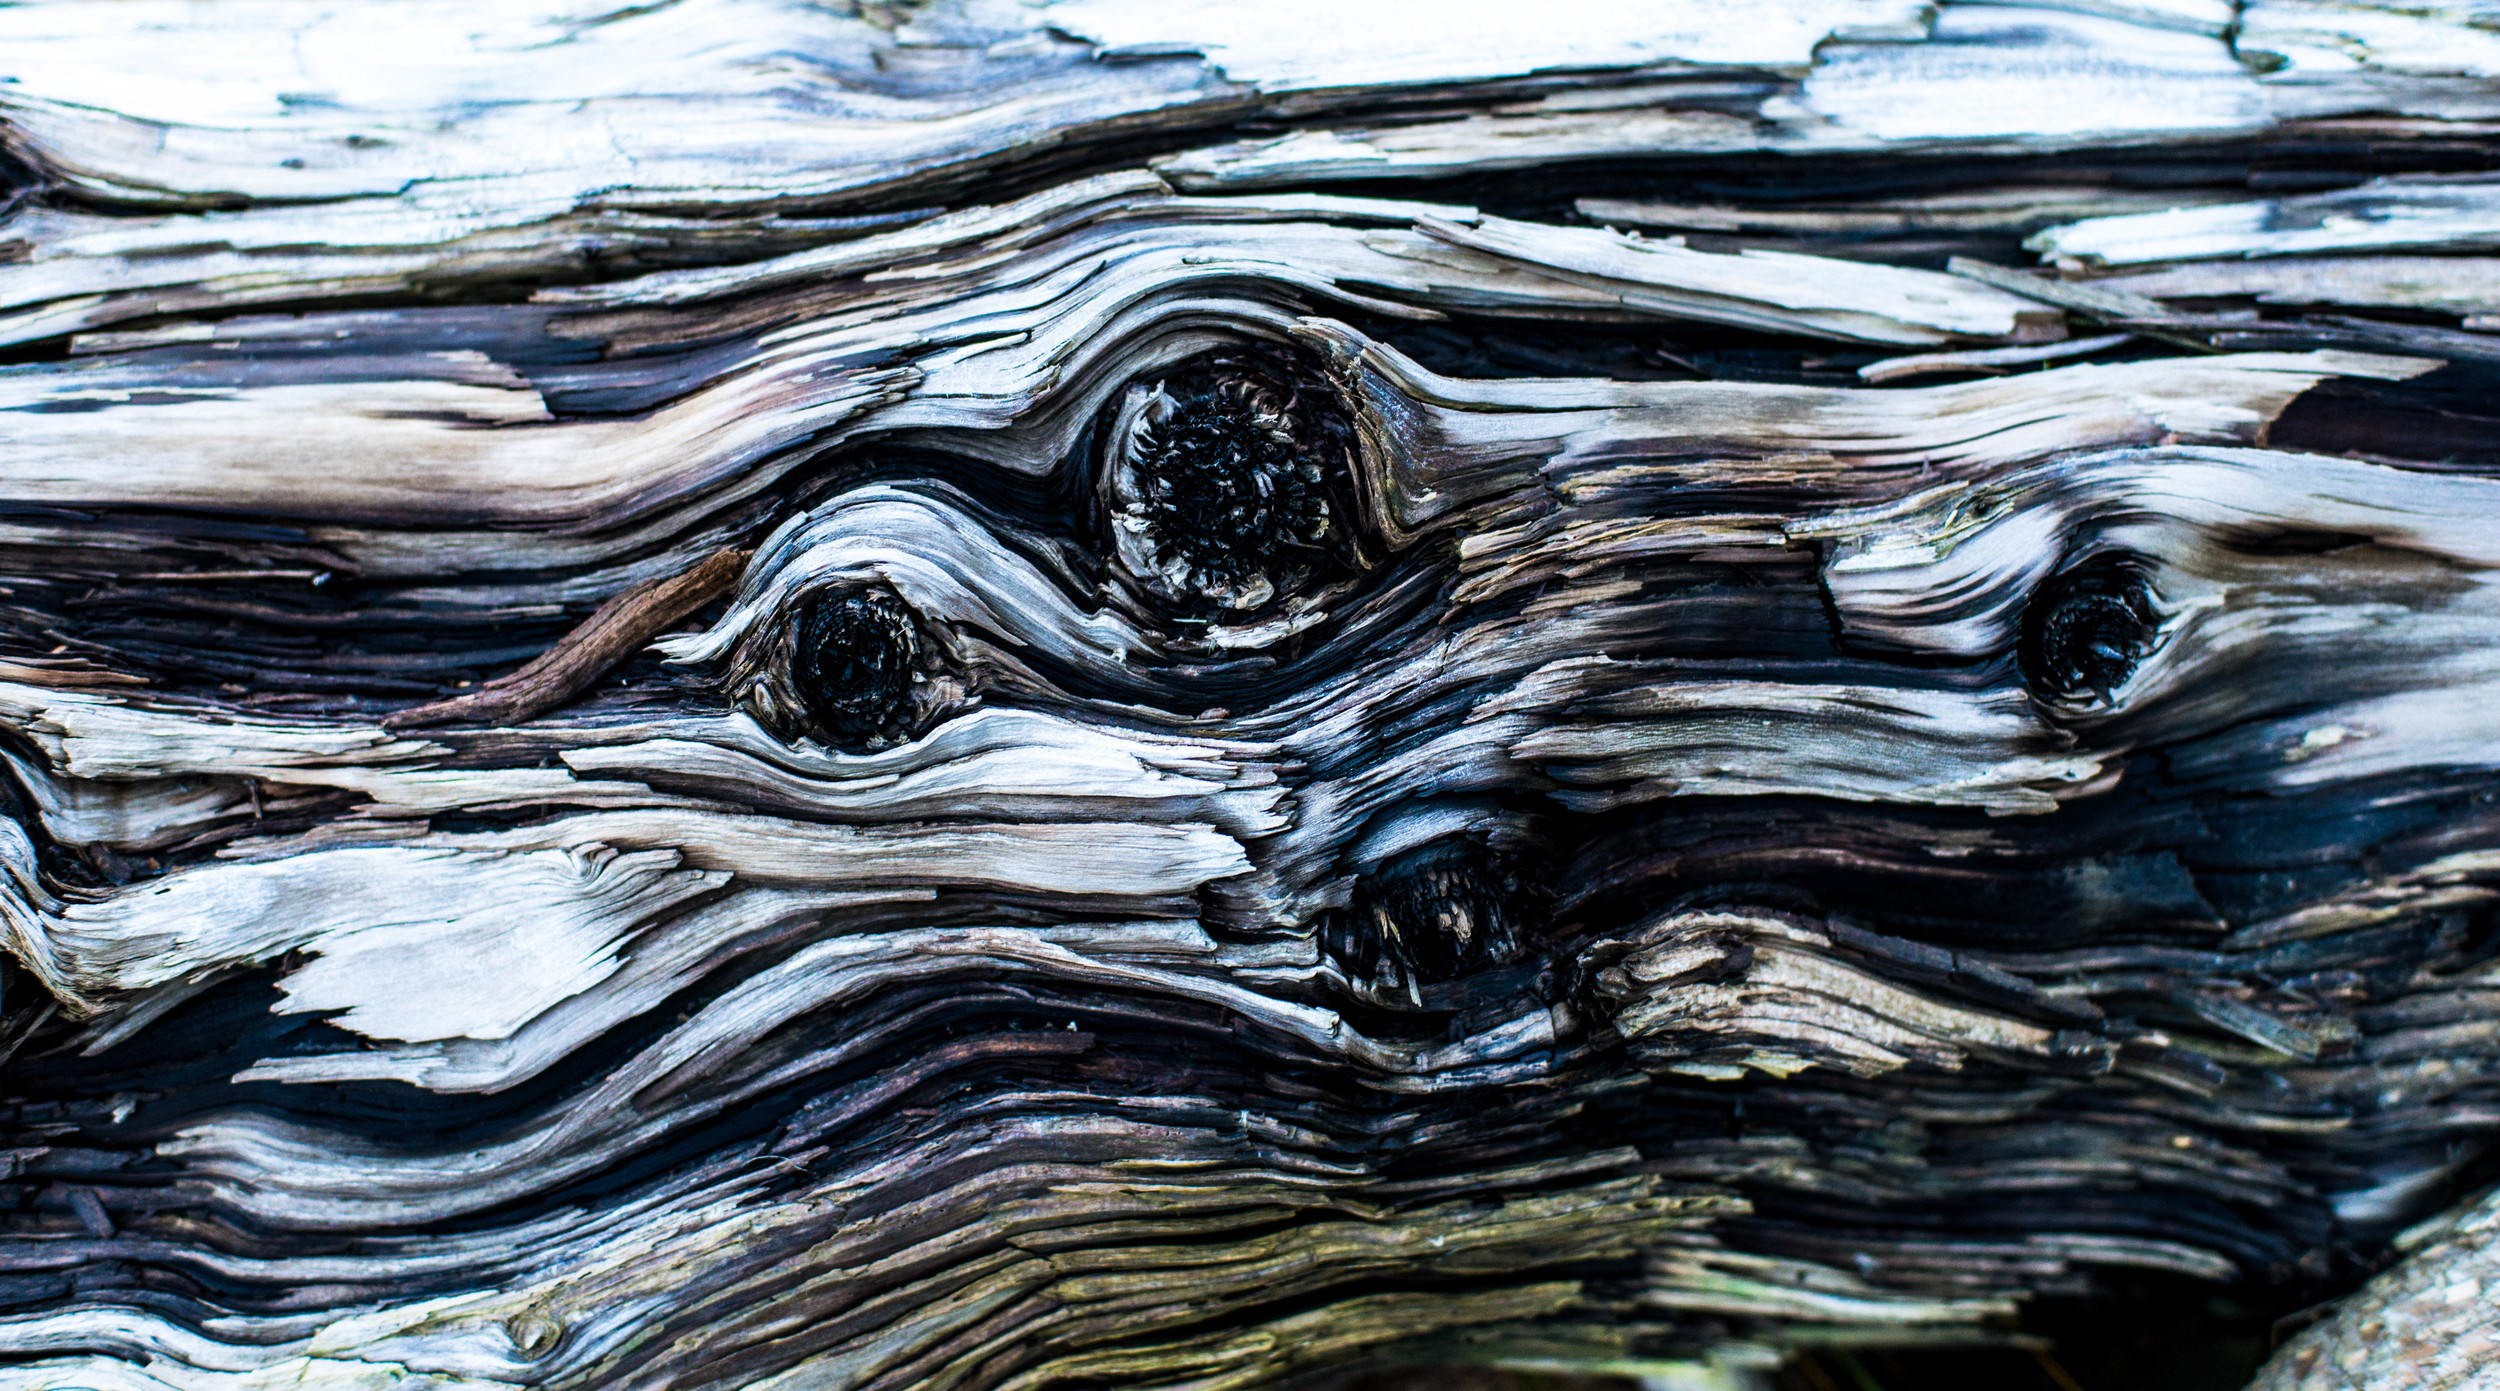 Details of the driftwood